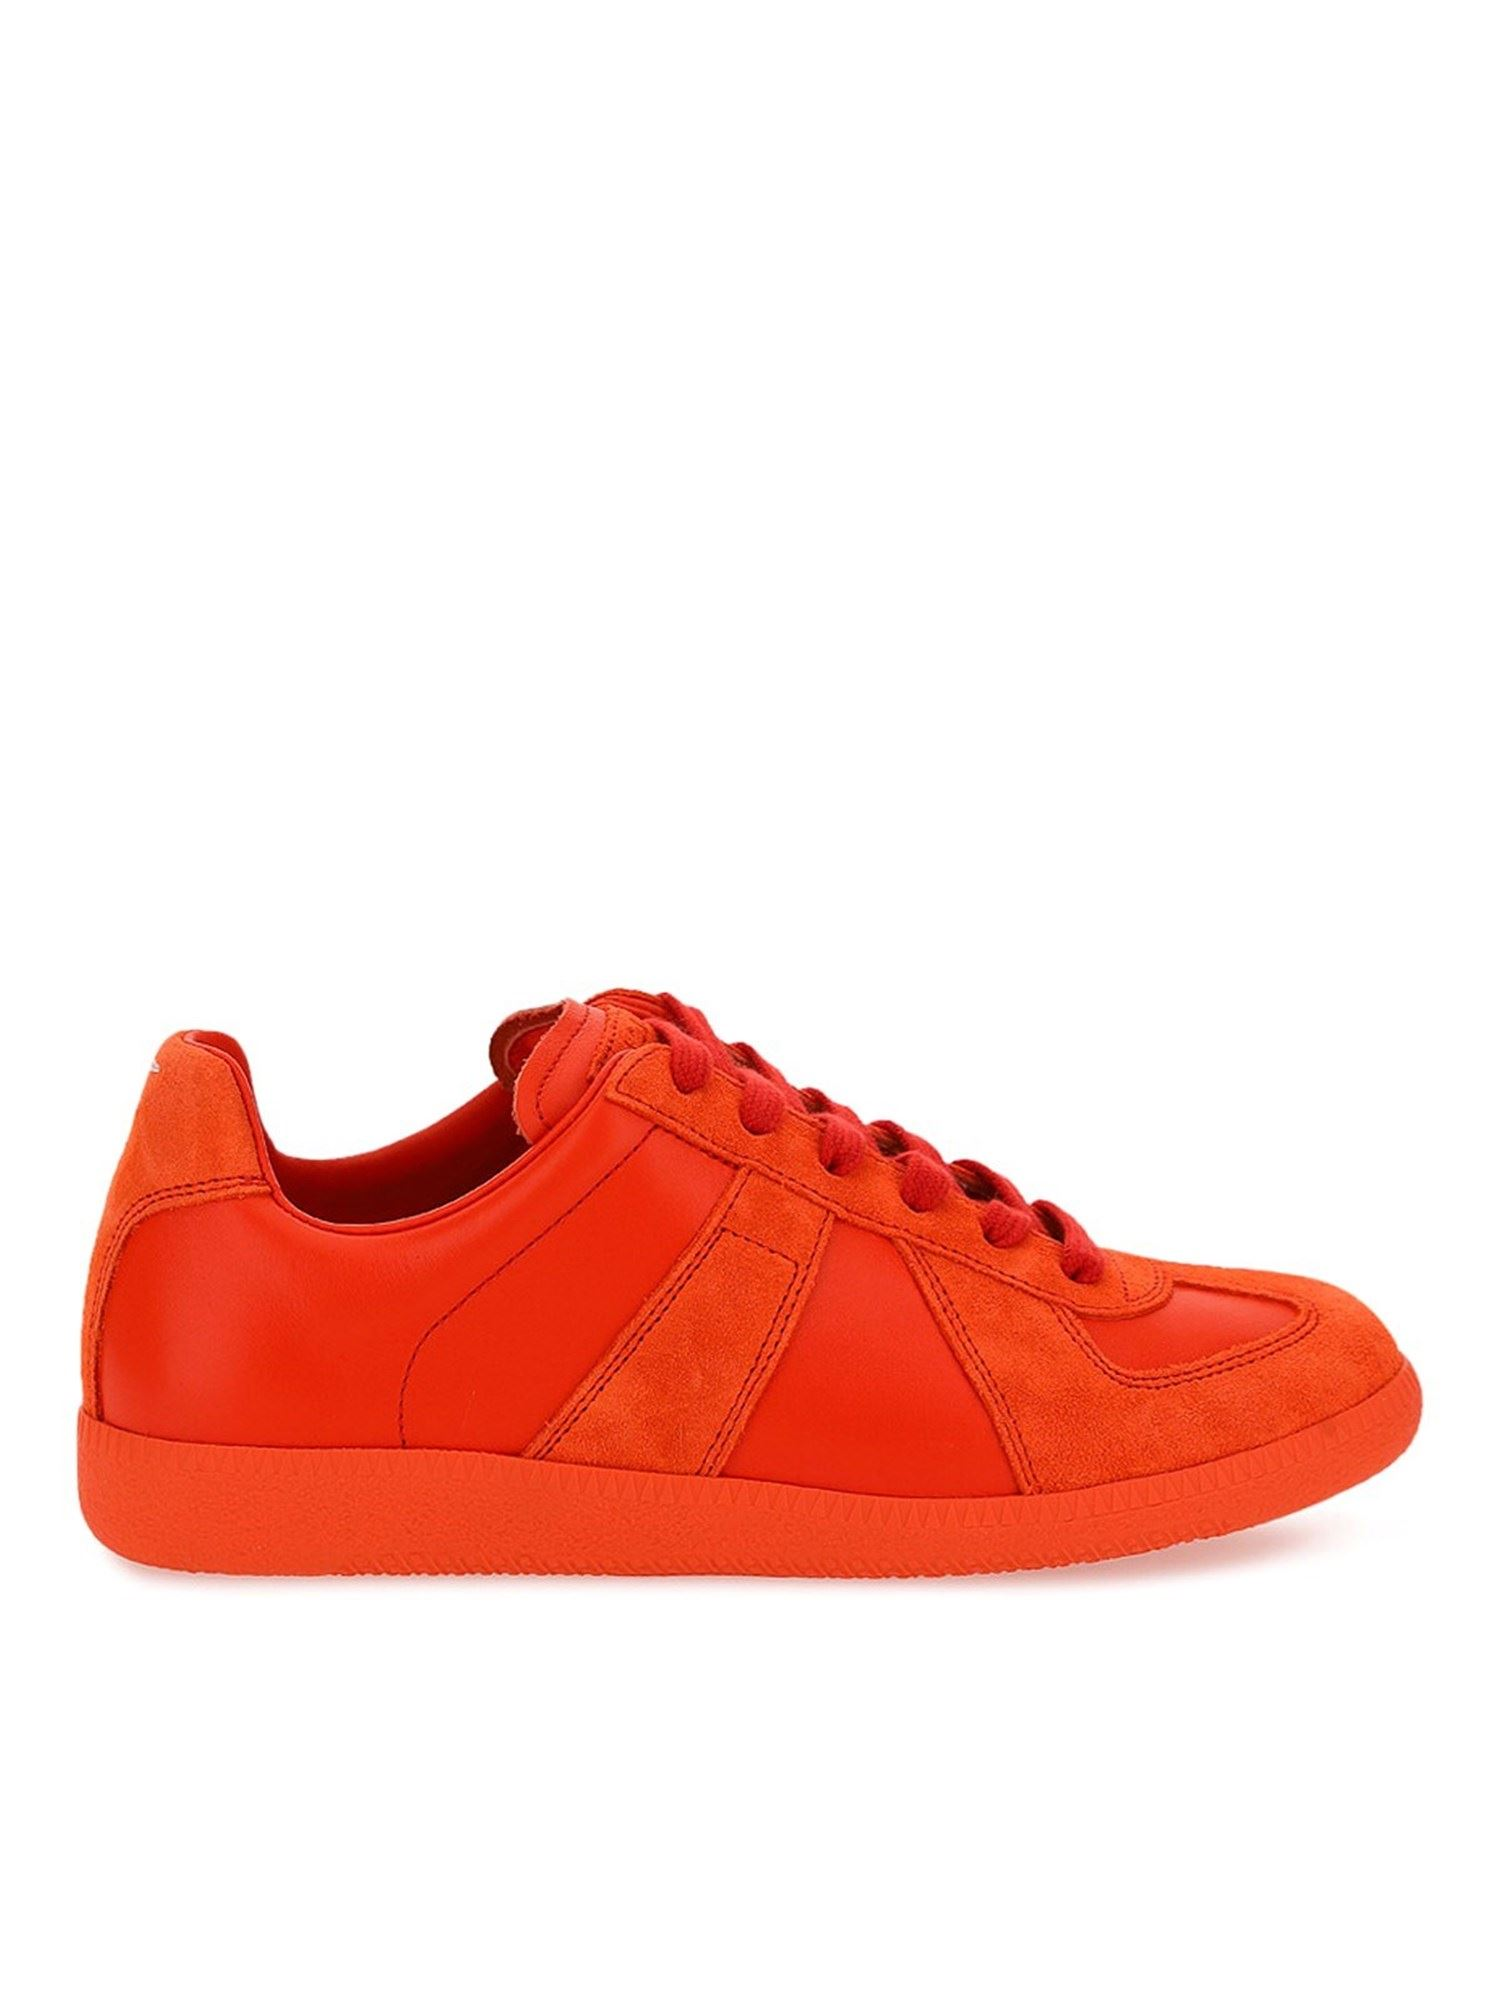 Maison Margiela REPLICA SNEAKERS IN ORANGE